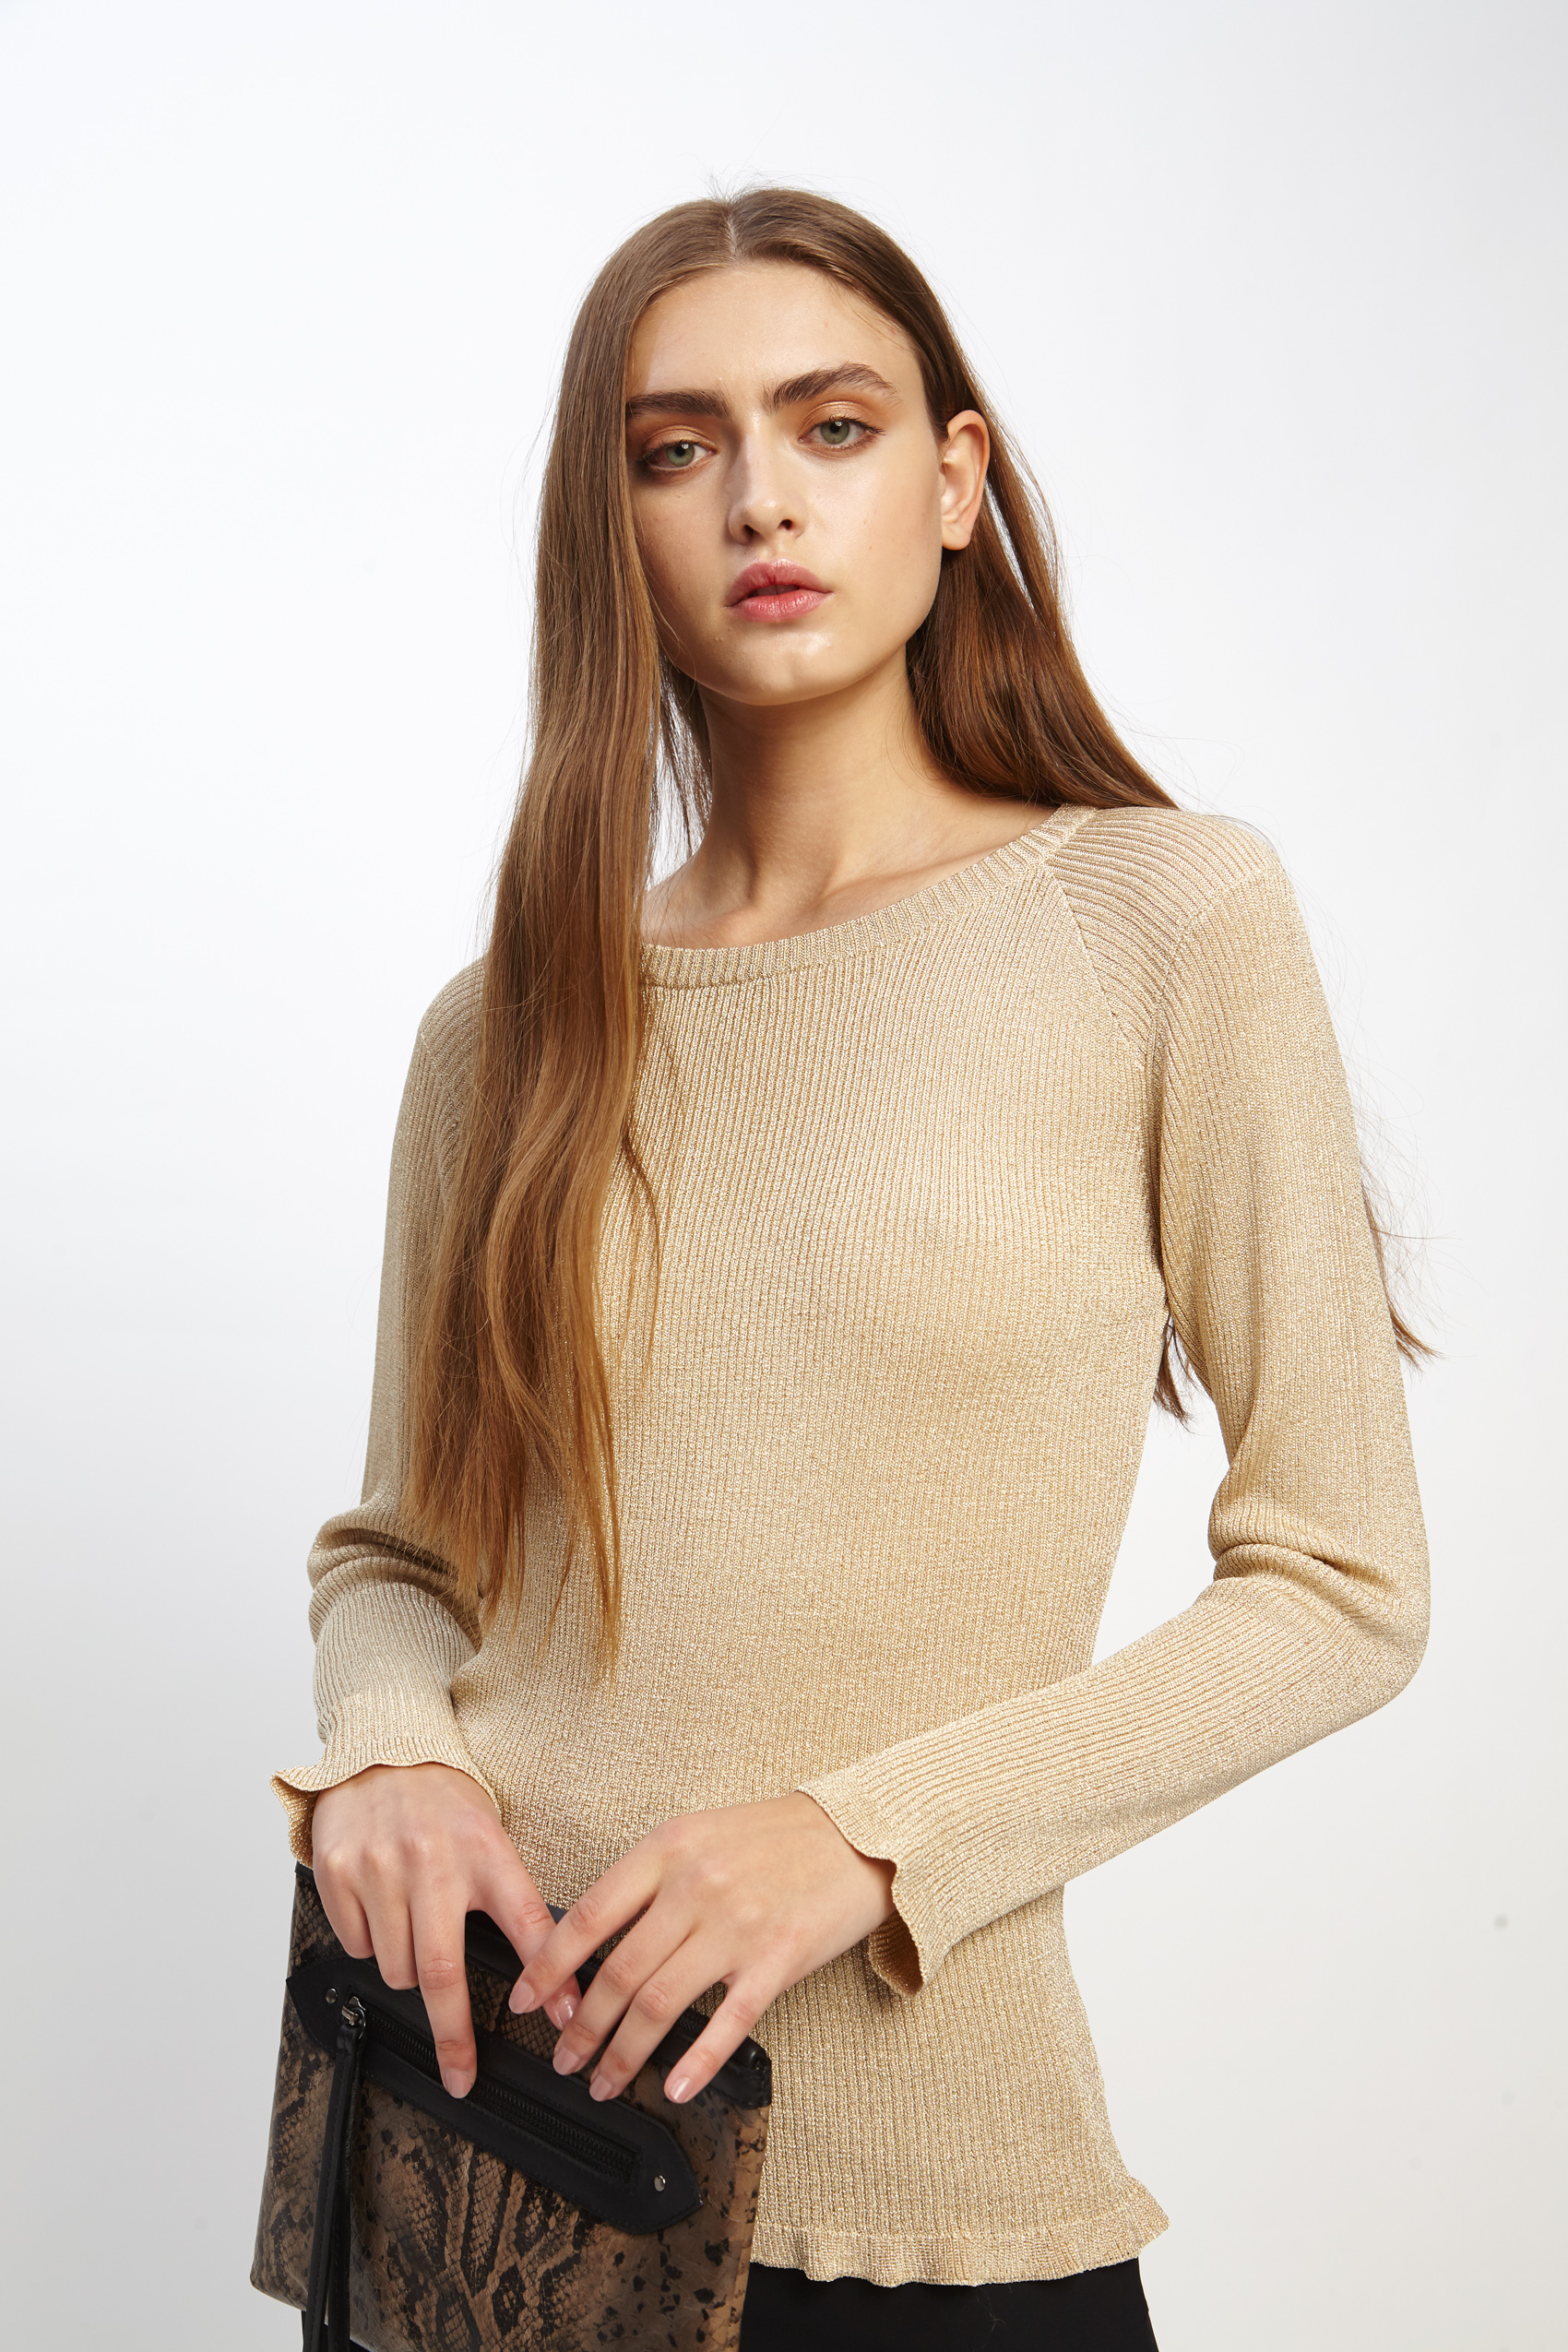 awada_sweater-celine_23-17-2019__picture-2508